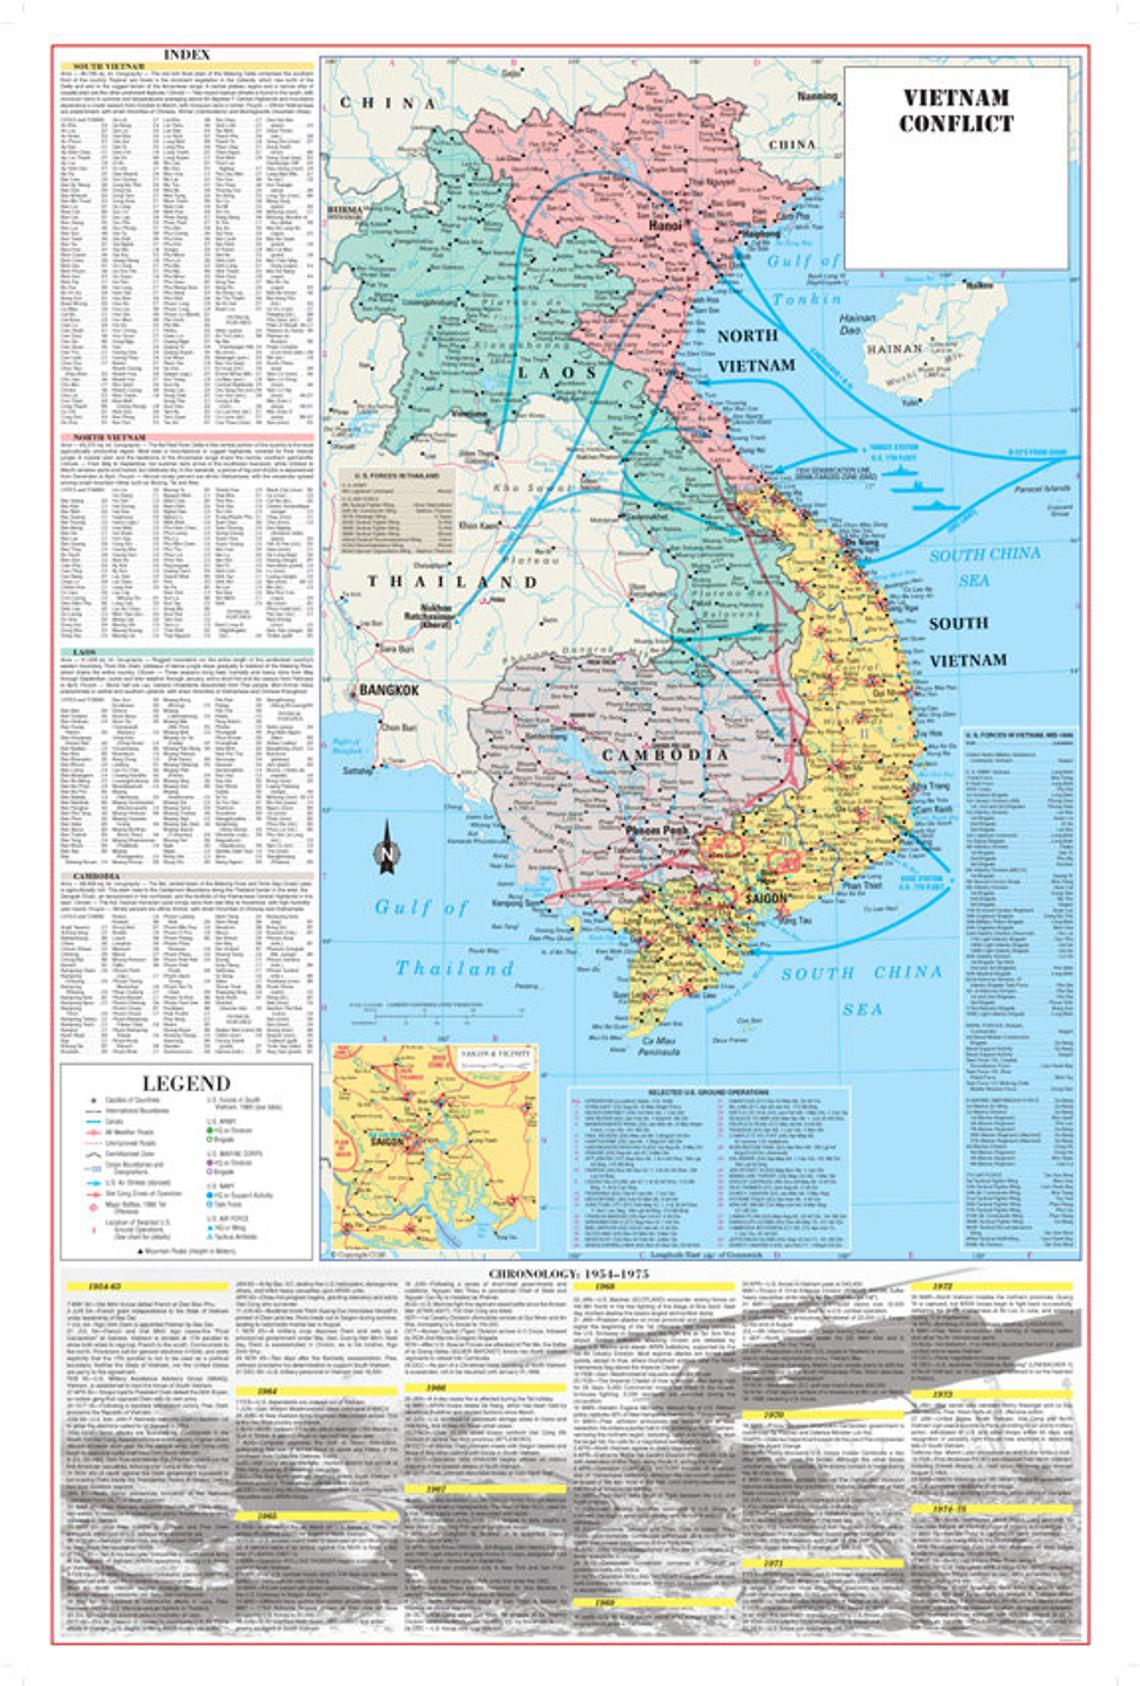 Vietnam War Conflict Map